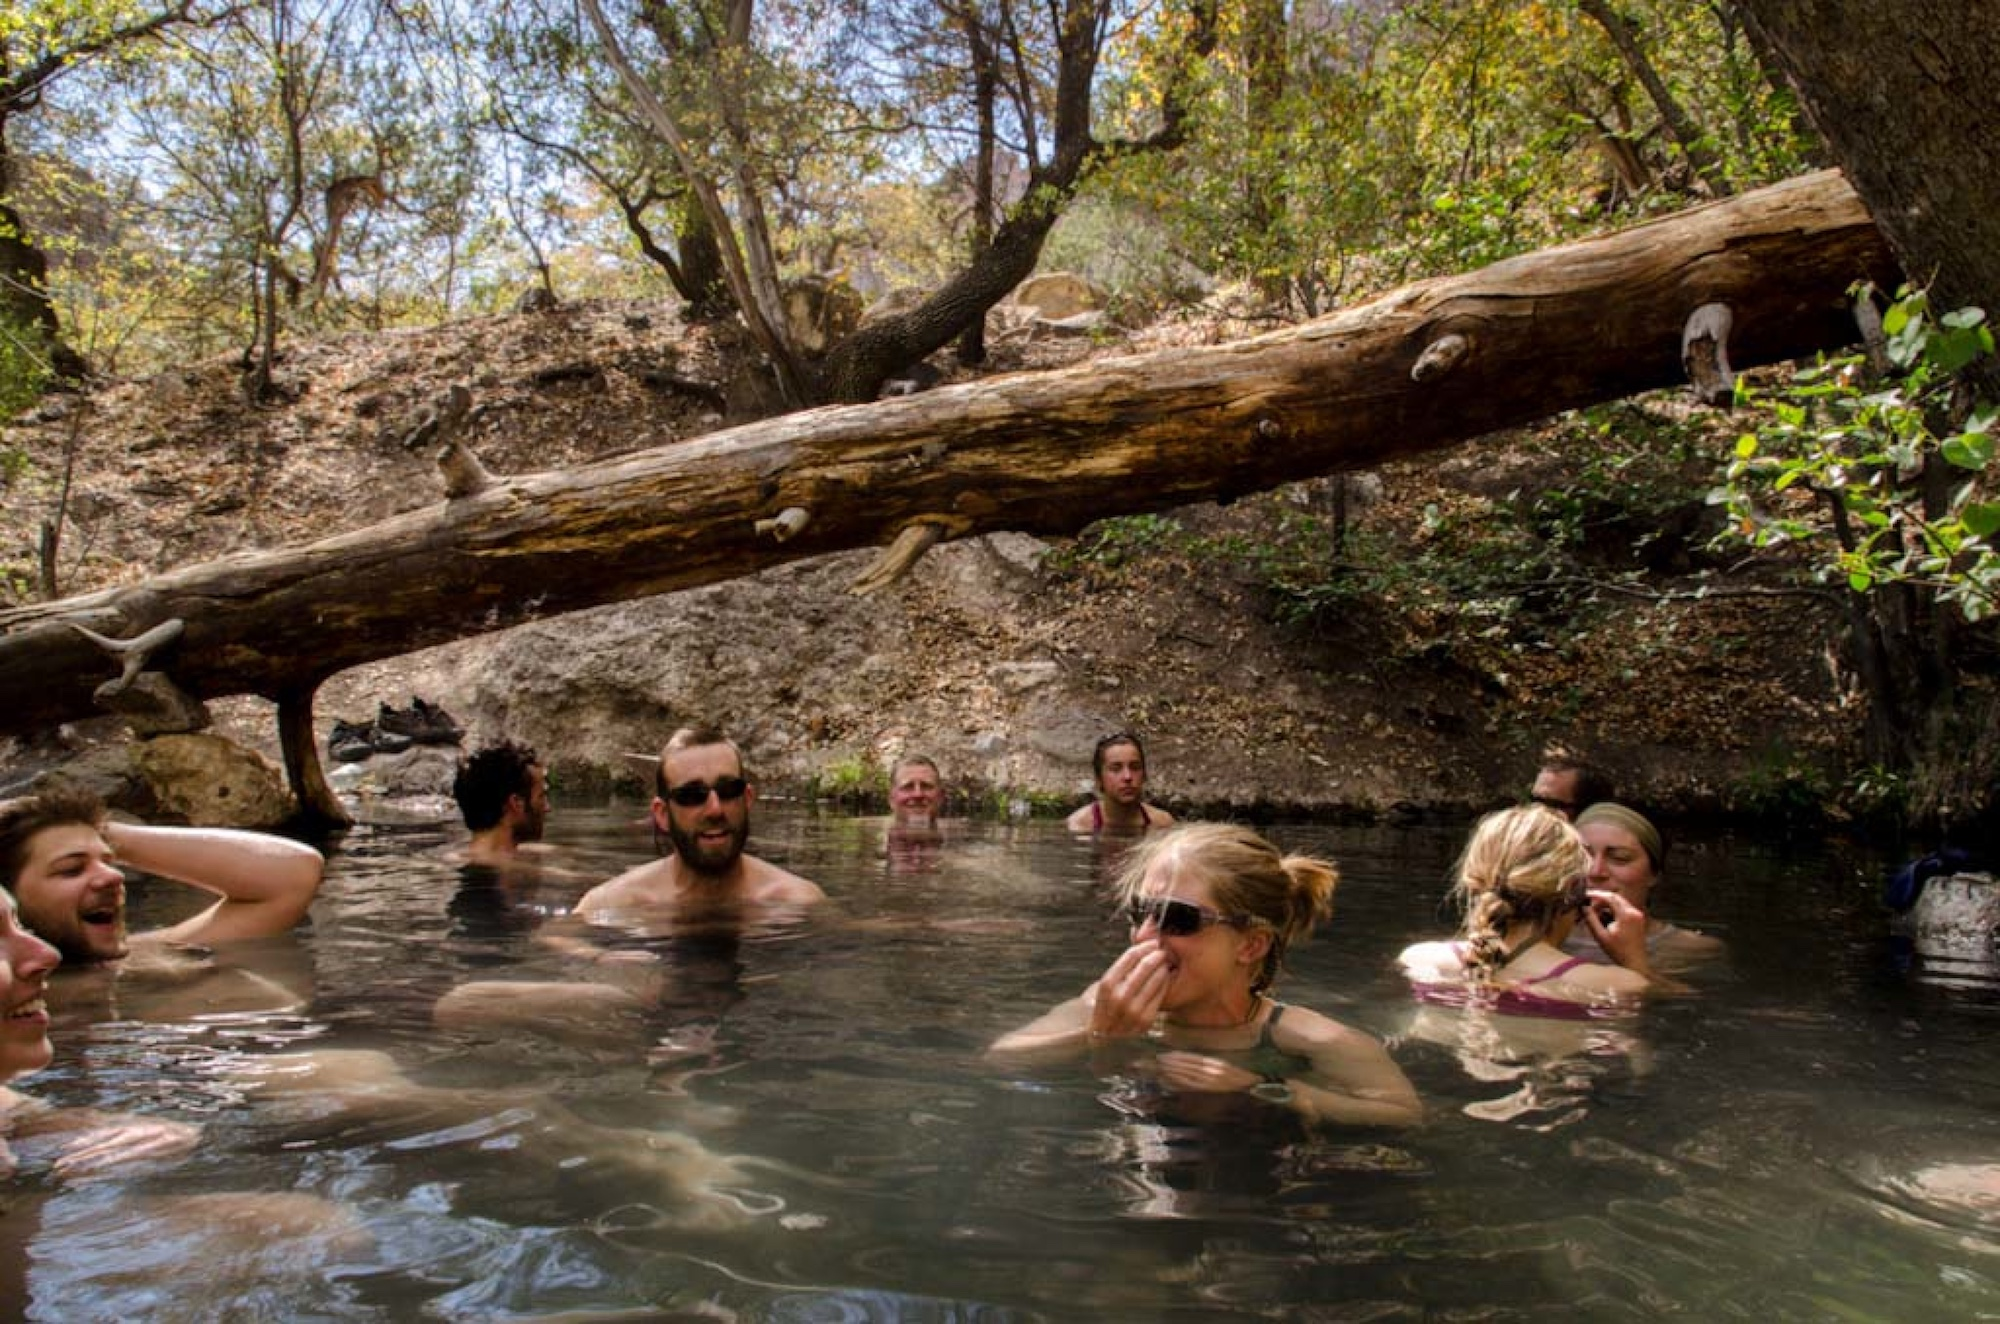 NOLS participants enjoying a hot spring in the Gila Wilderness